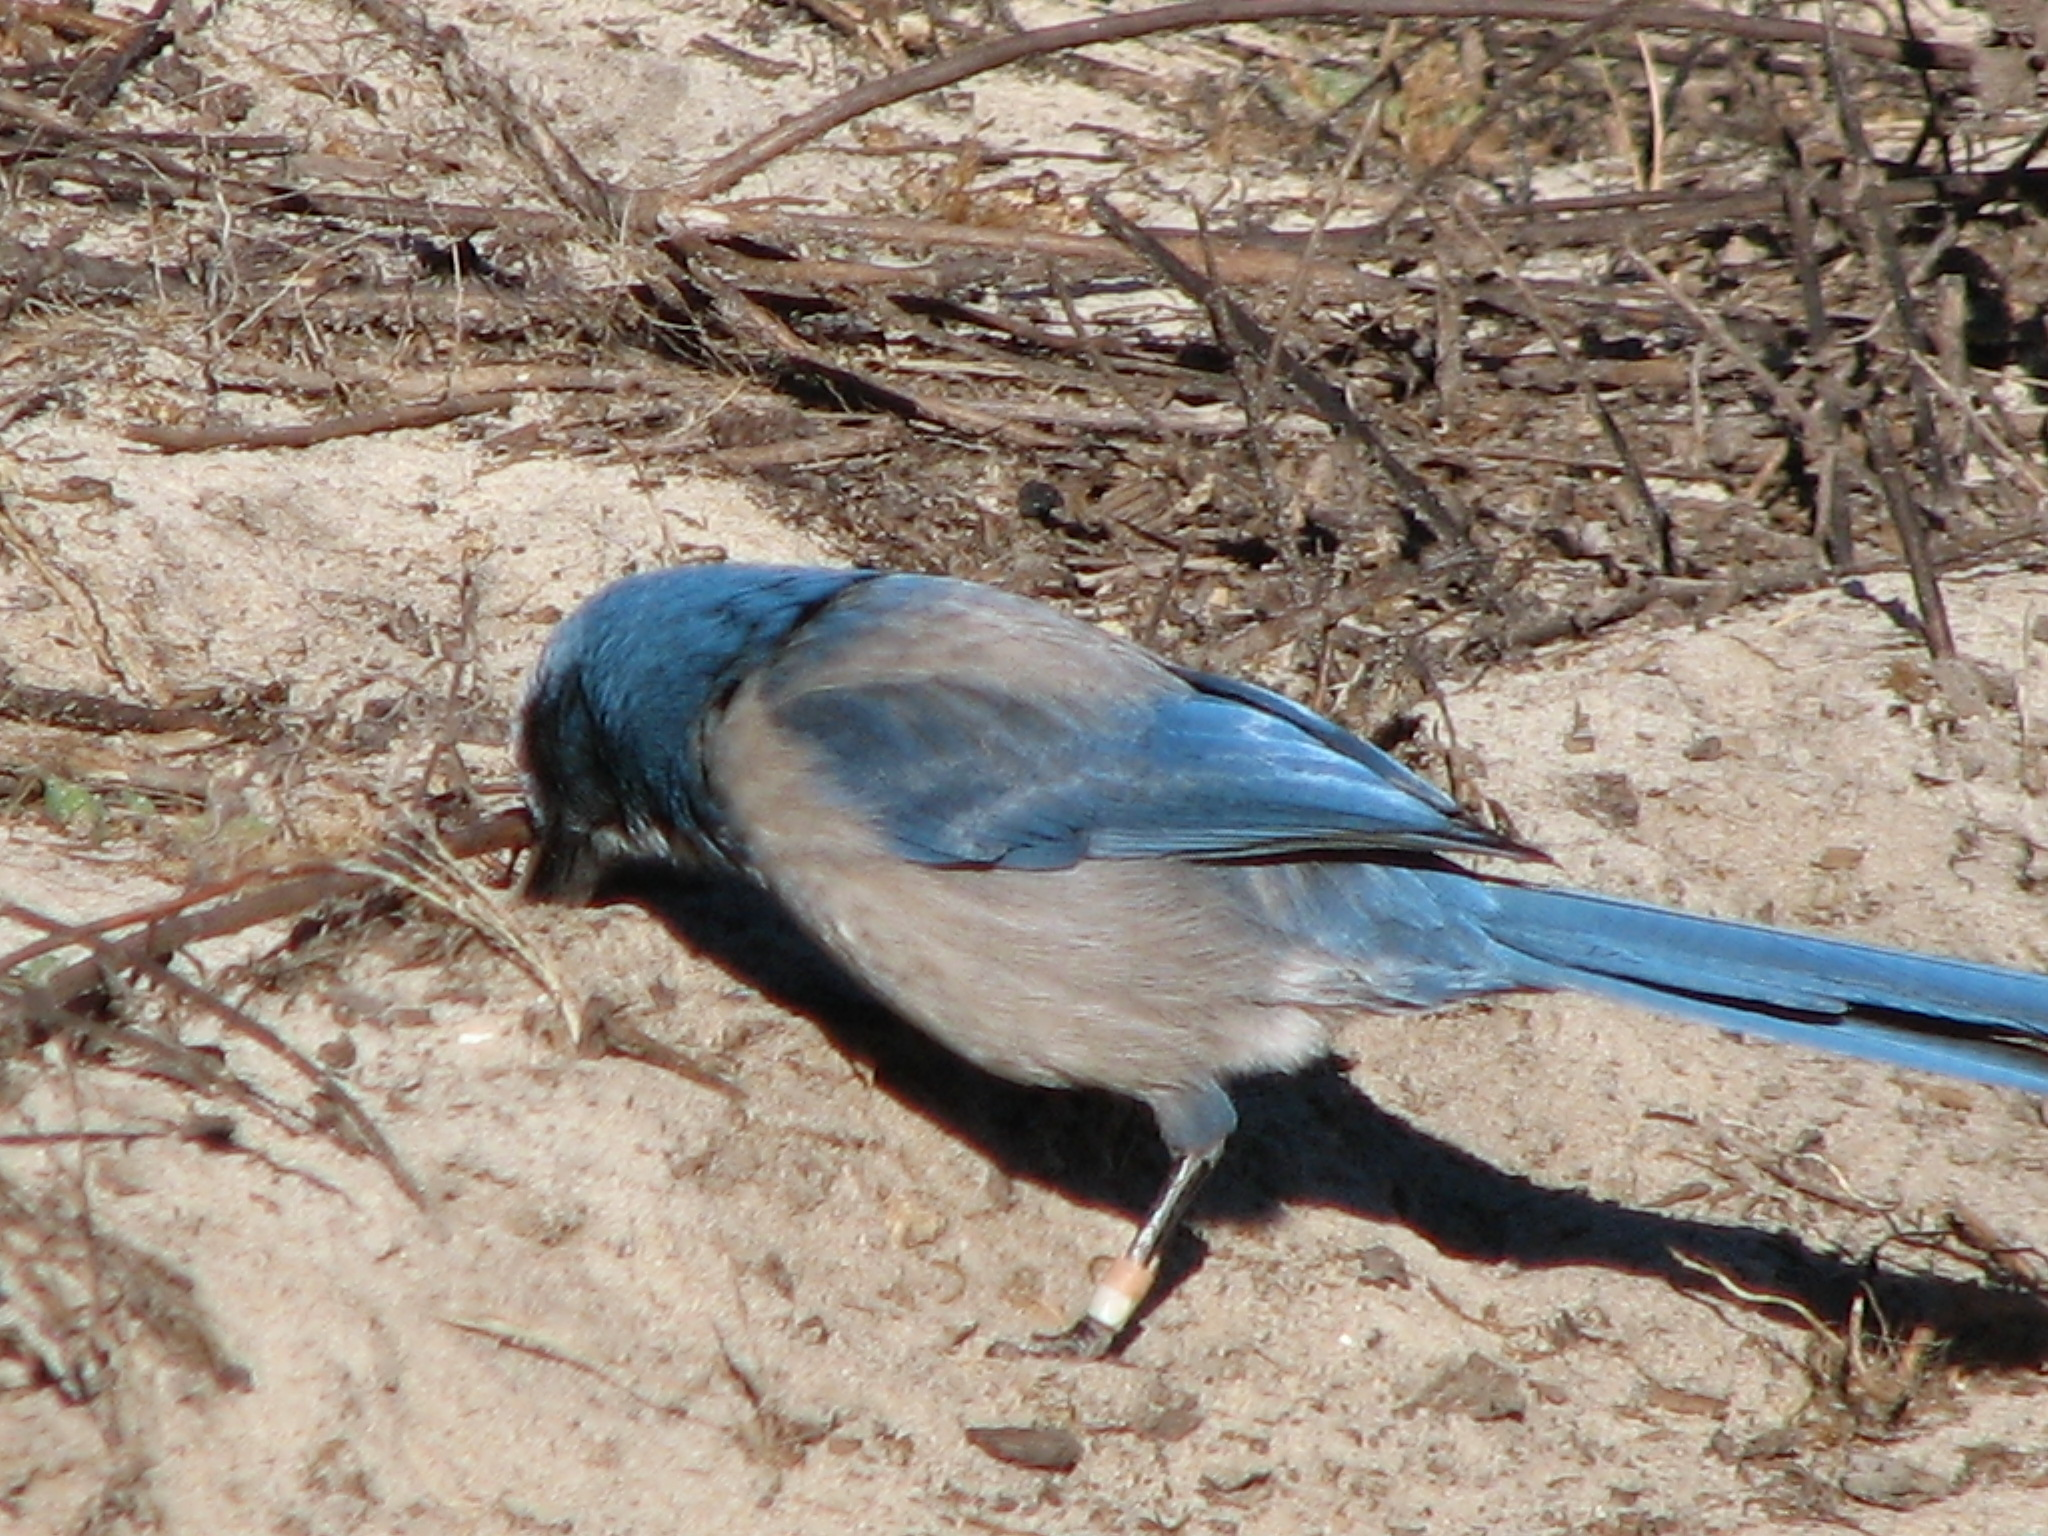 A banded Florida scrub-jay caching acorns in the sand to save for later. They can bury up to 5,000 acorns or more per bird each fall and then live off their stores all winter.